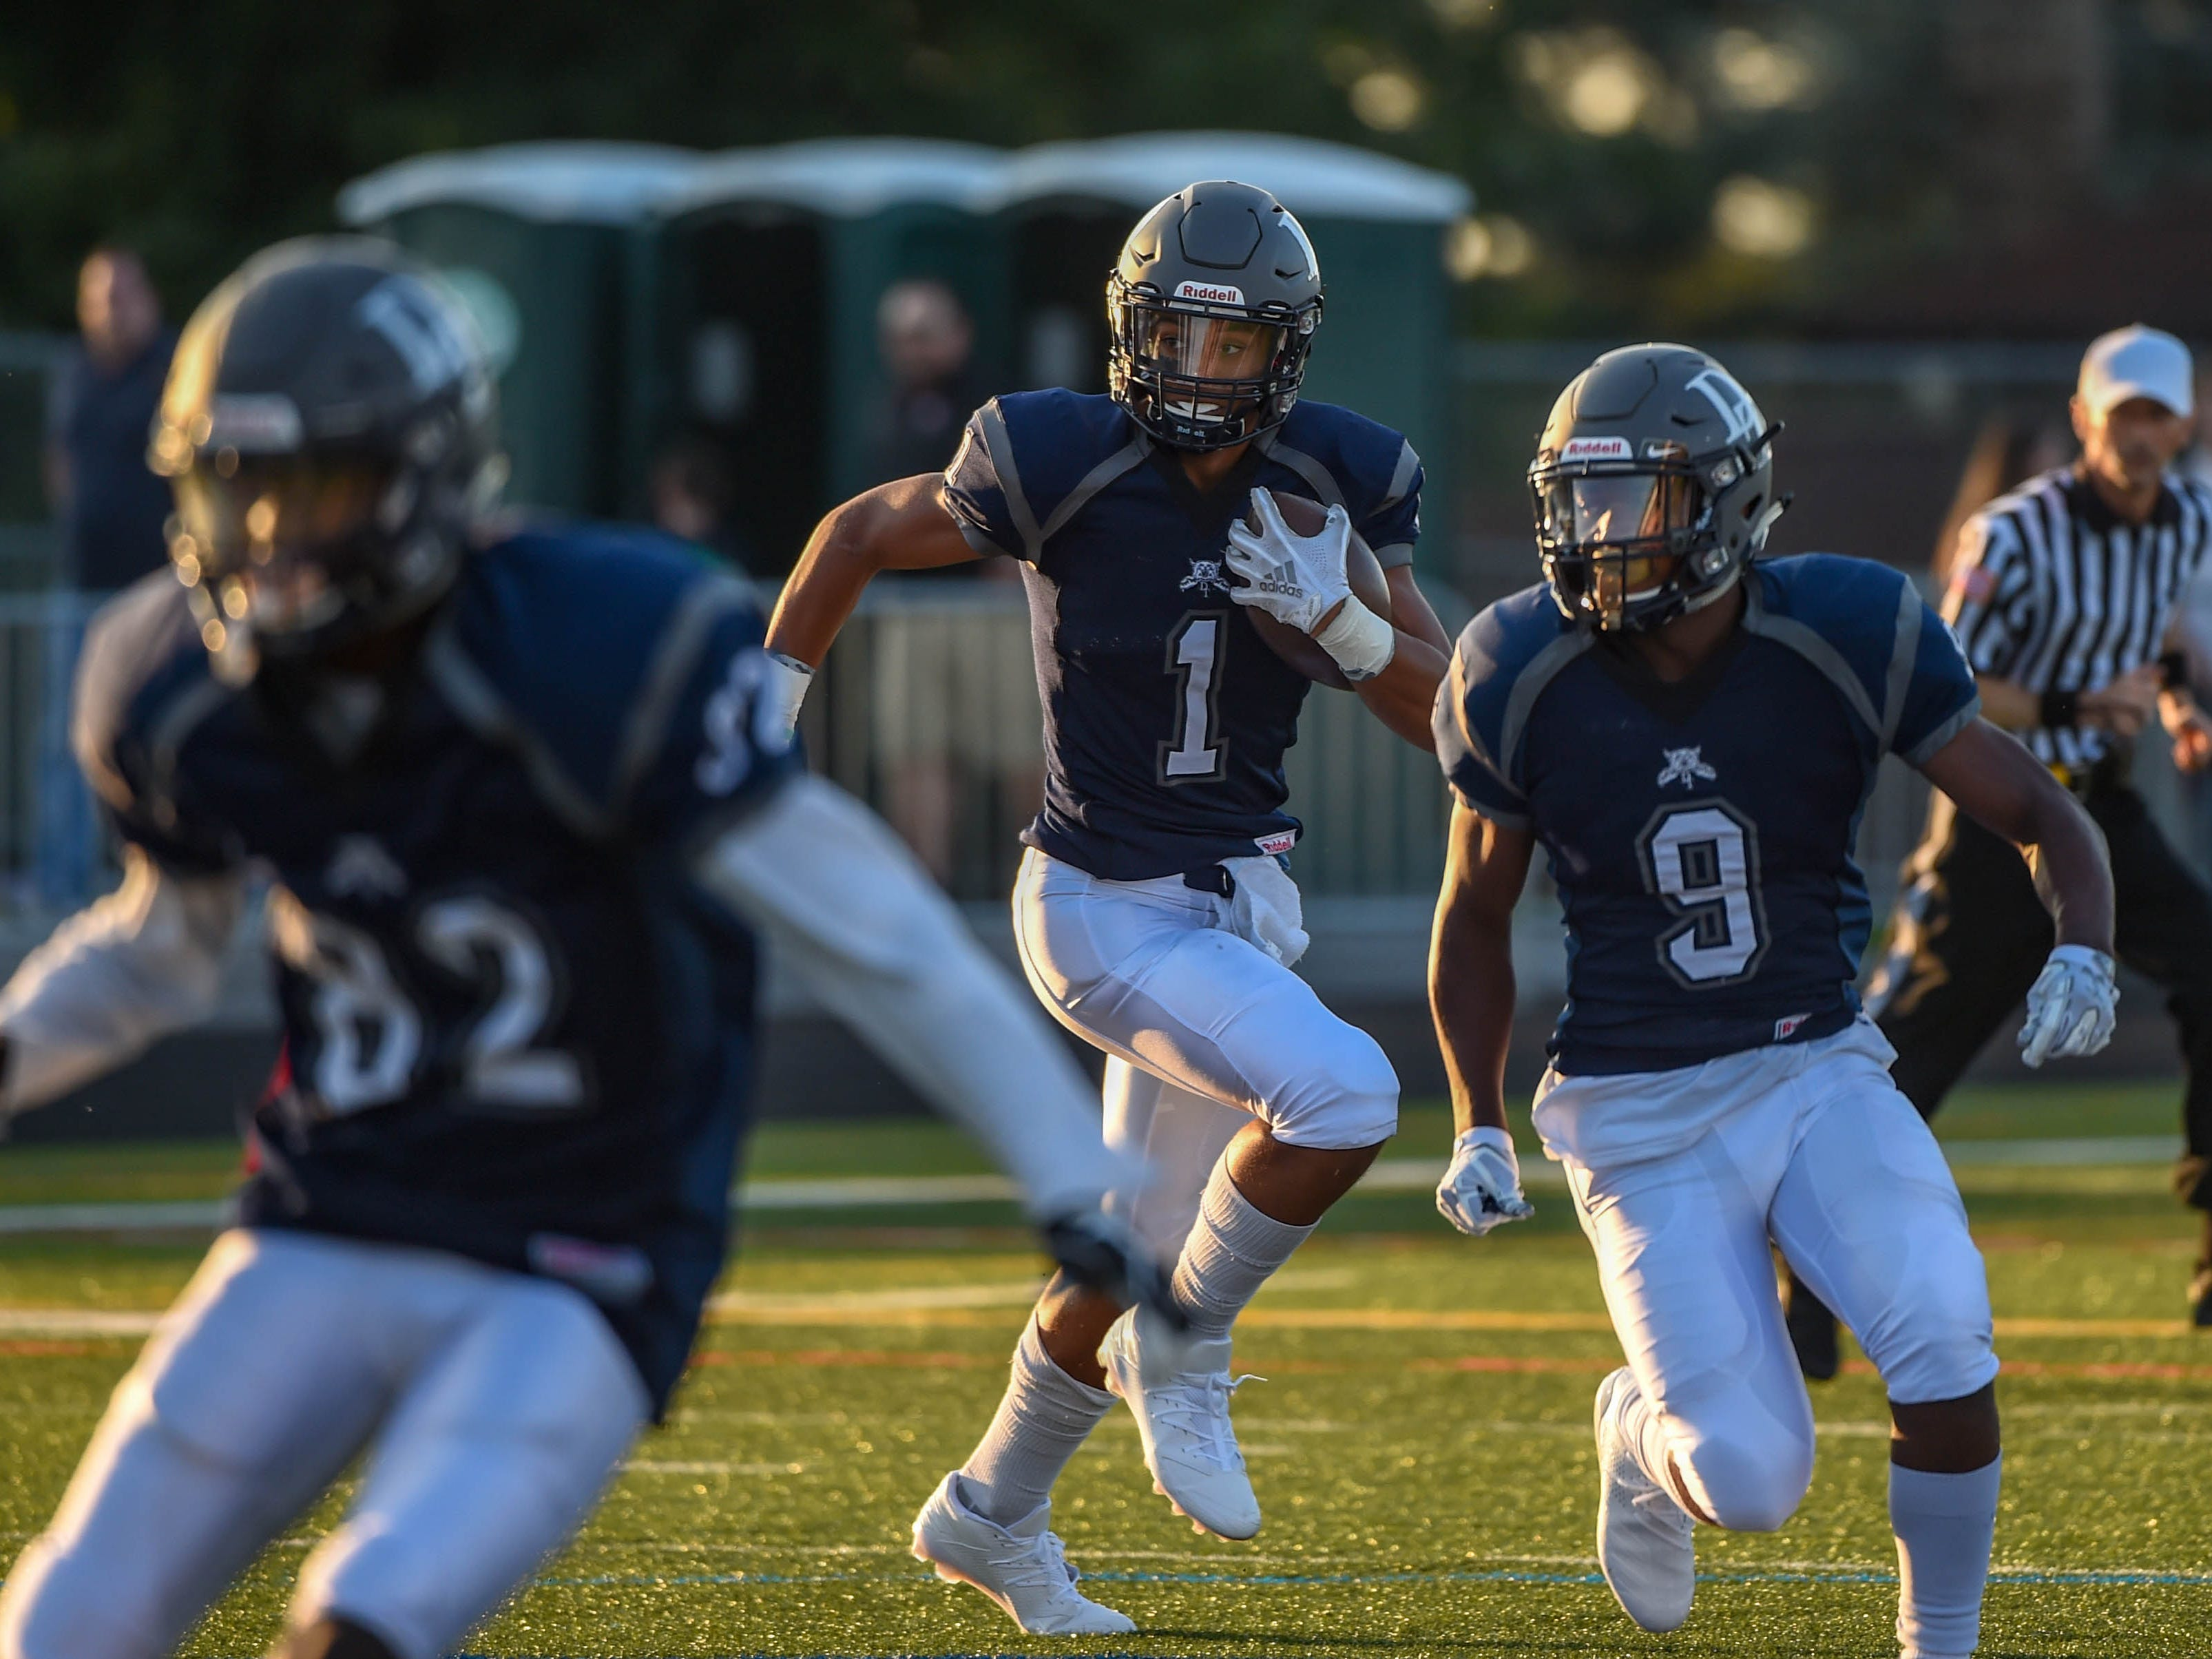 Dallastown Quarterback Jordan Cook runs the ball for a first down during the Dallastown home opener against Hempfield on August 24, 2018.